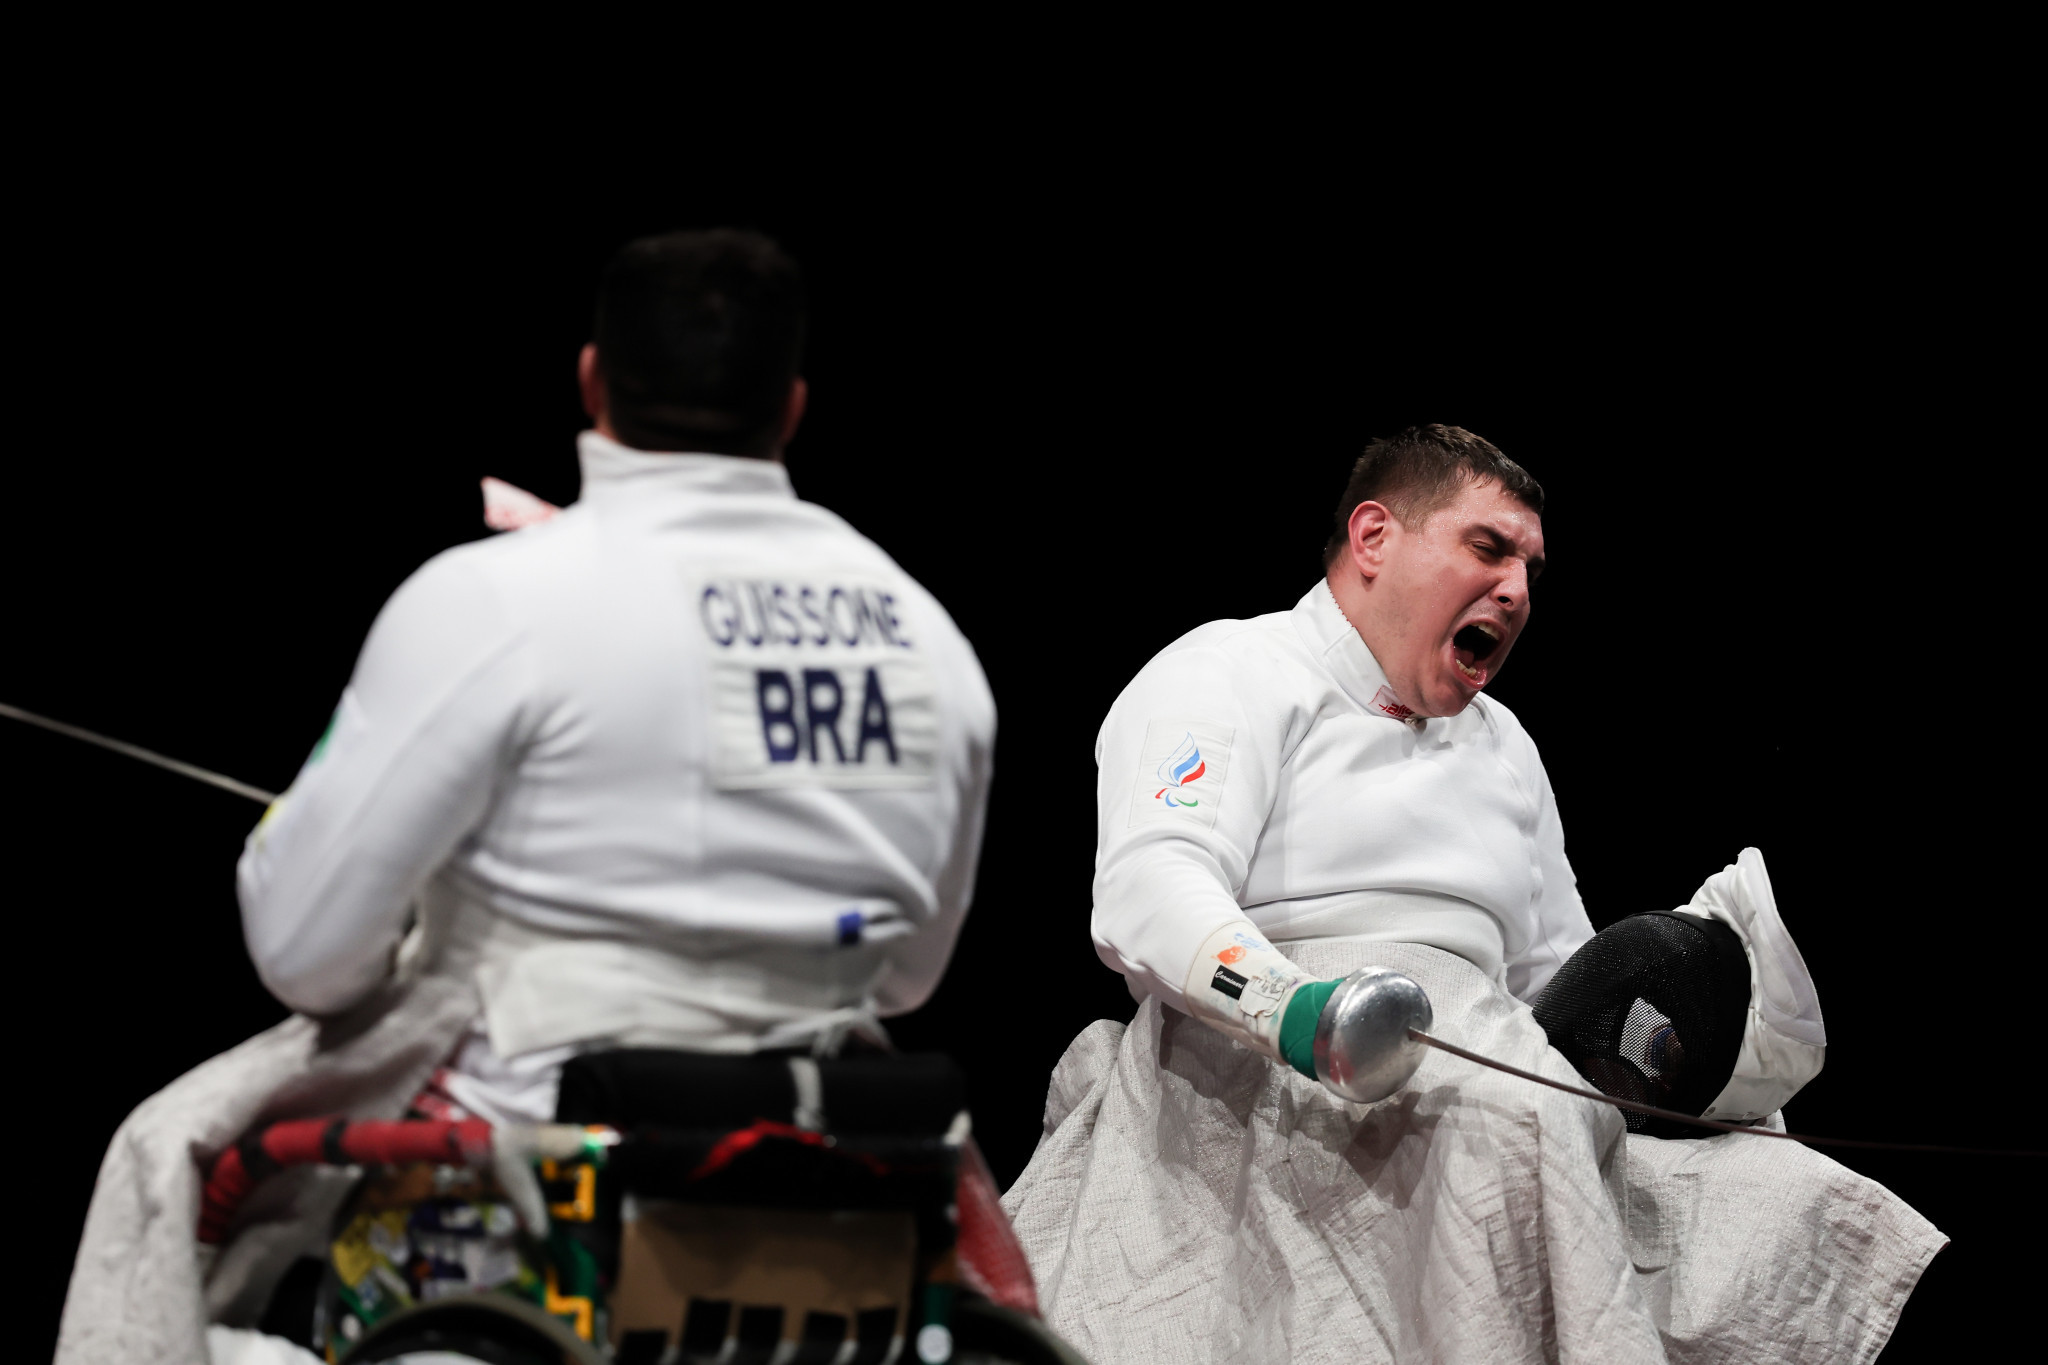 Alexander Kuzyukov, right, celebrates after a 15-8 gold medal bout victory against Jovane Guissone ©Getty Images